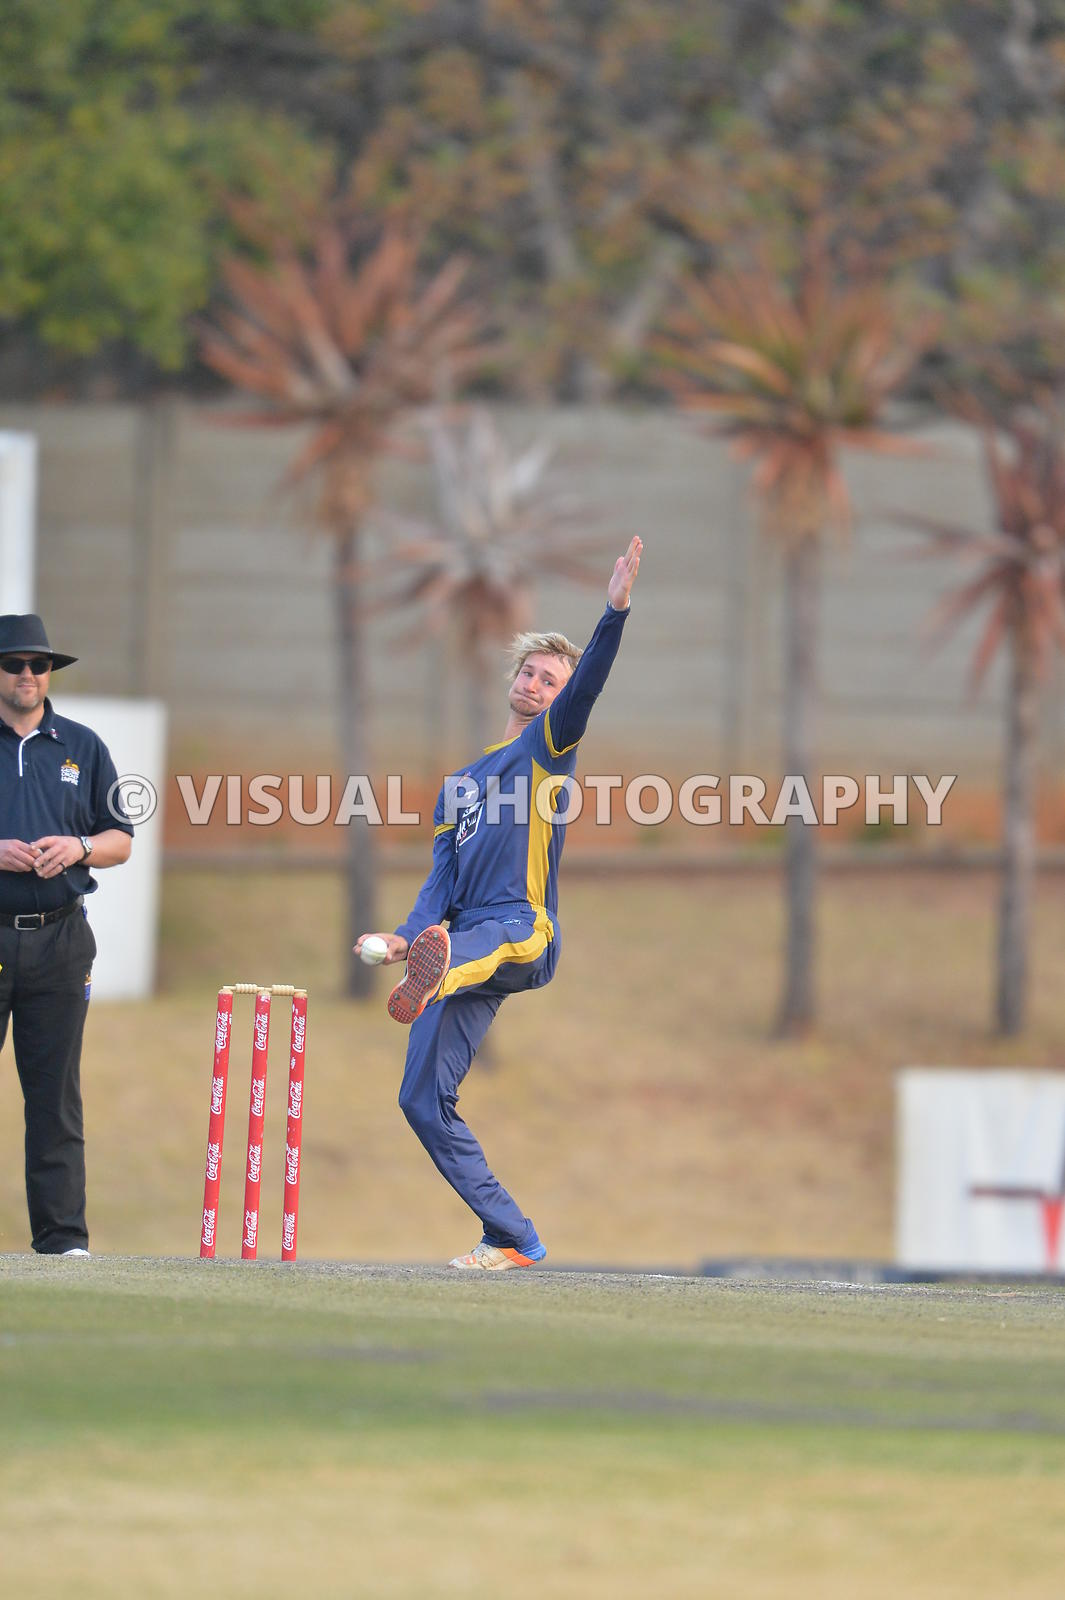 Cricket - 2018  day match (20-over match), Johannesburg - South Atrica - Bank  - Cats